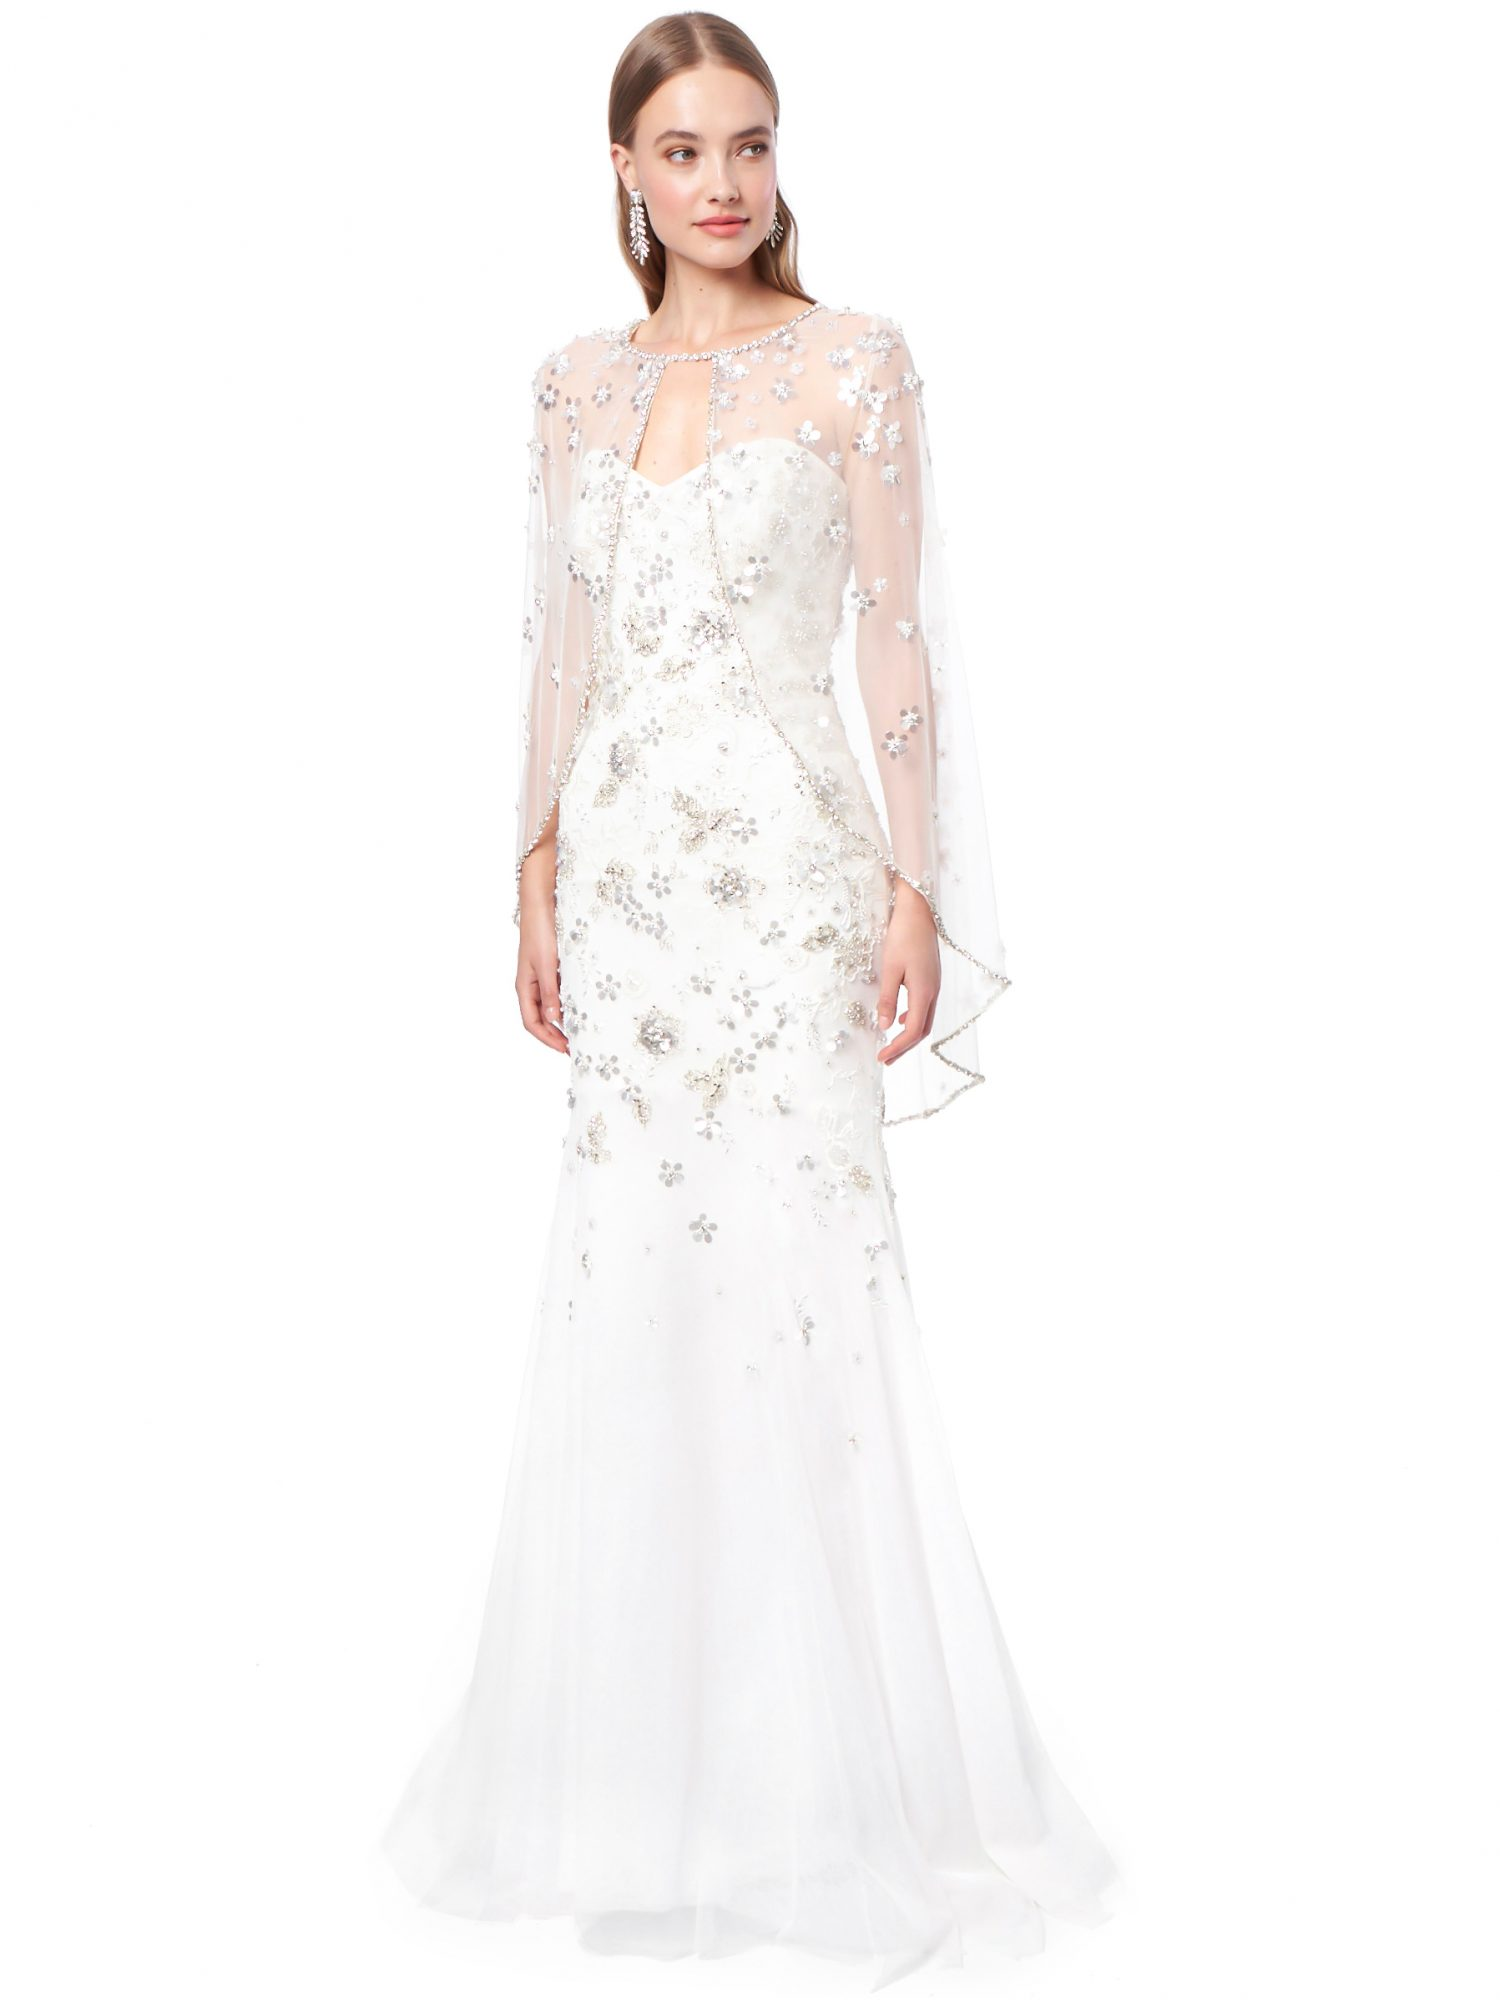 jenny packham strapless sweetheart wedding dress with sheer cape fall 2021